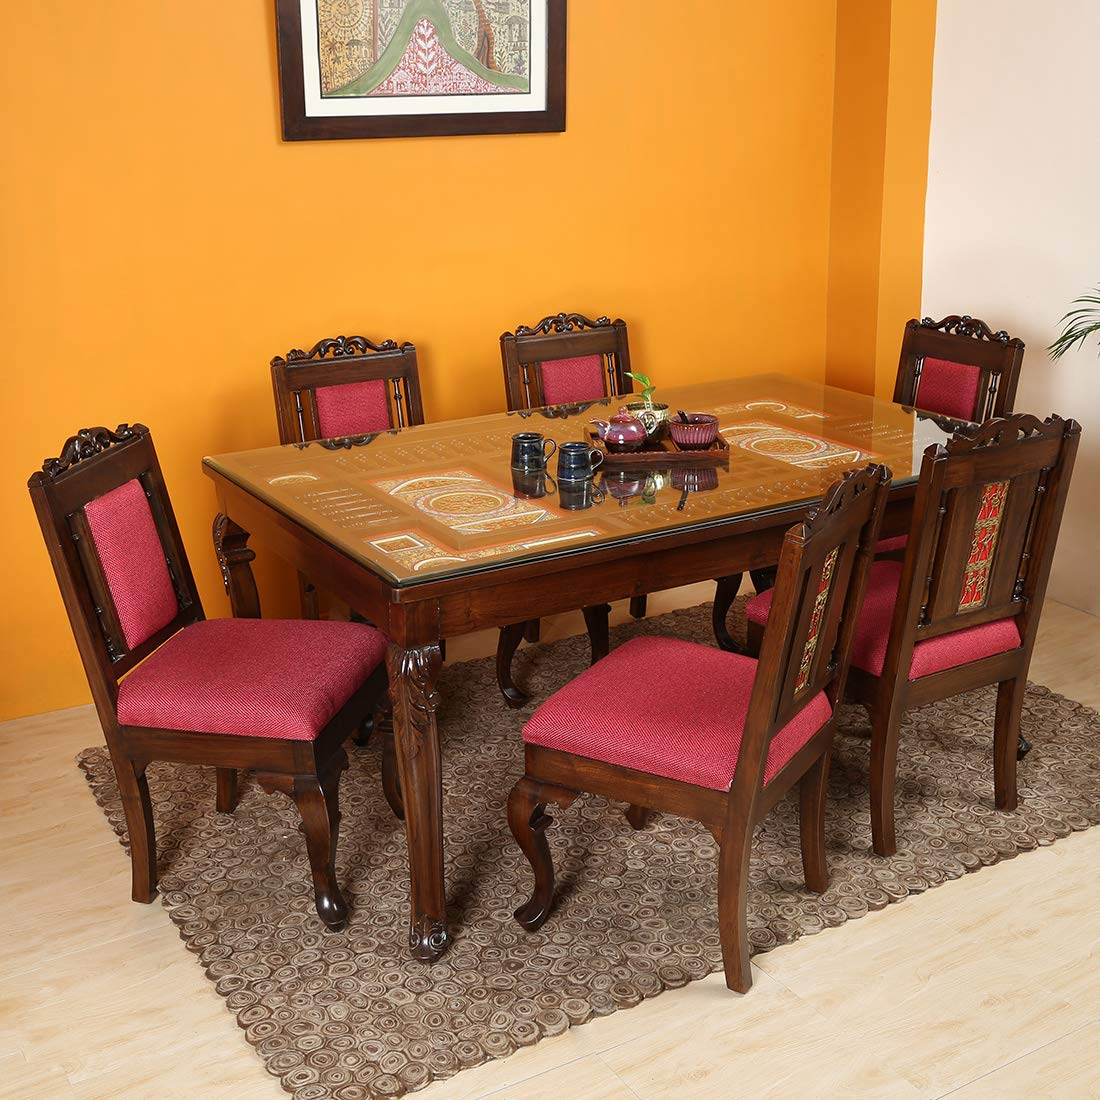 Aakriti Art Creations Six Seater Dining Table With Six Chairs Amazon In Electronics